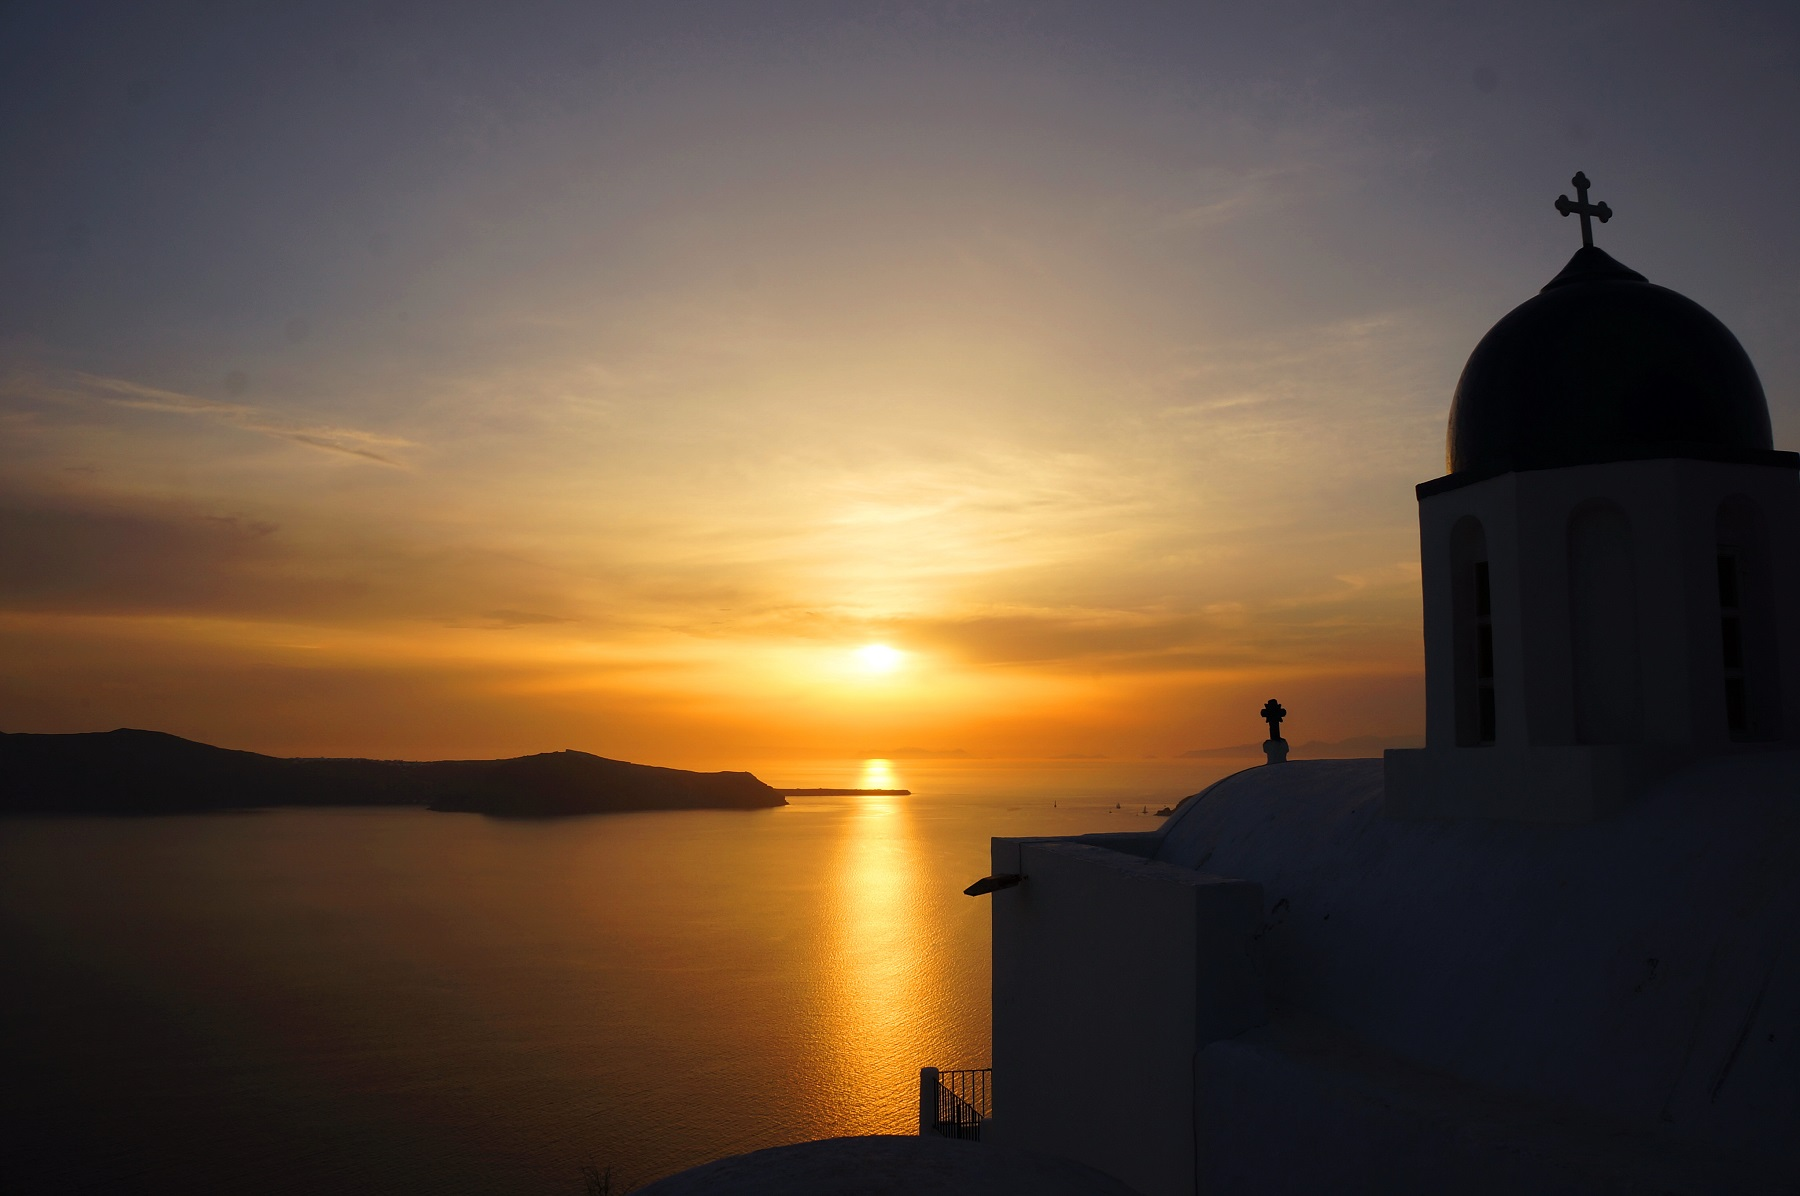 Sunset in Santorini 2017